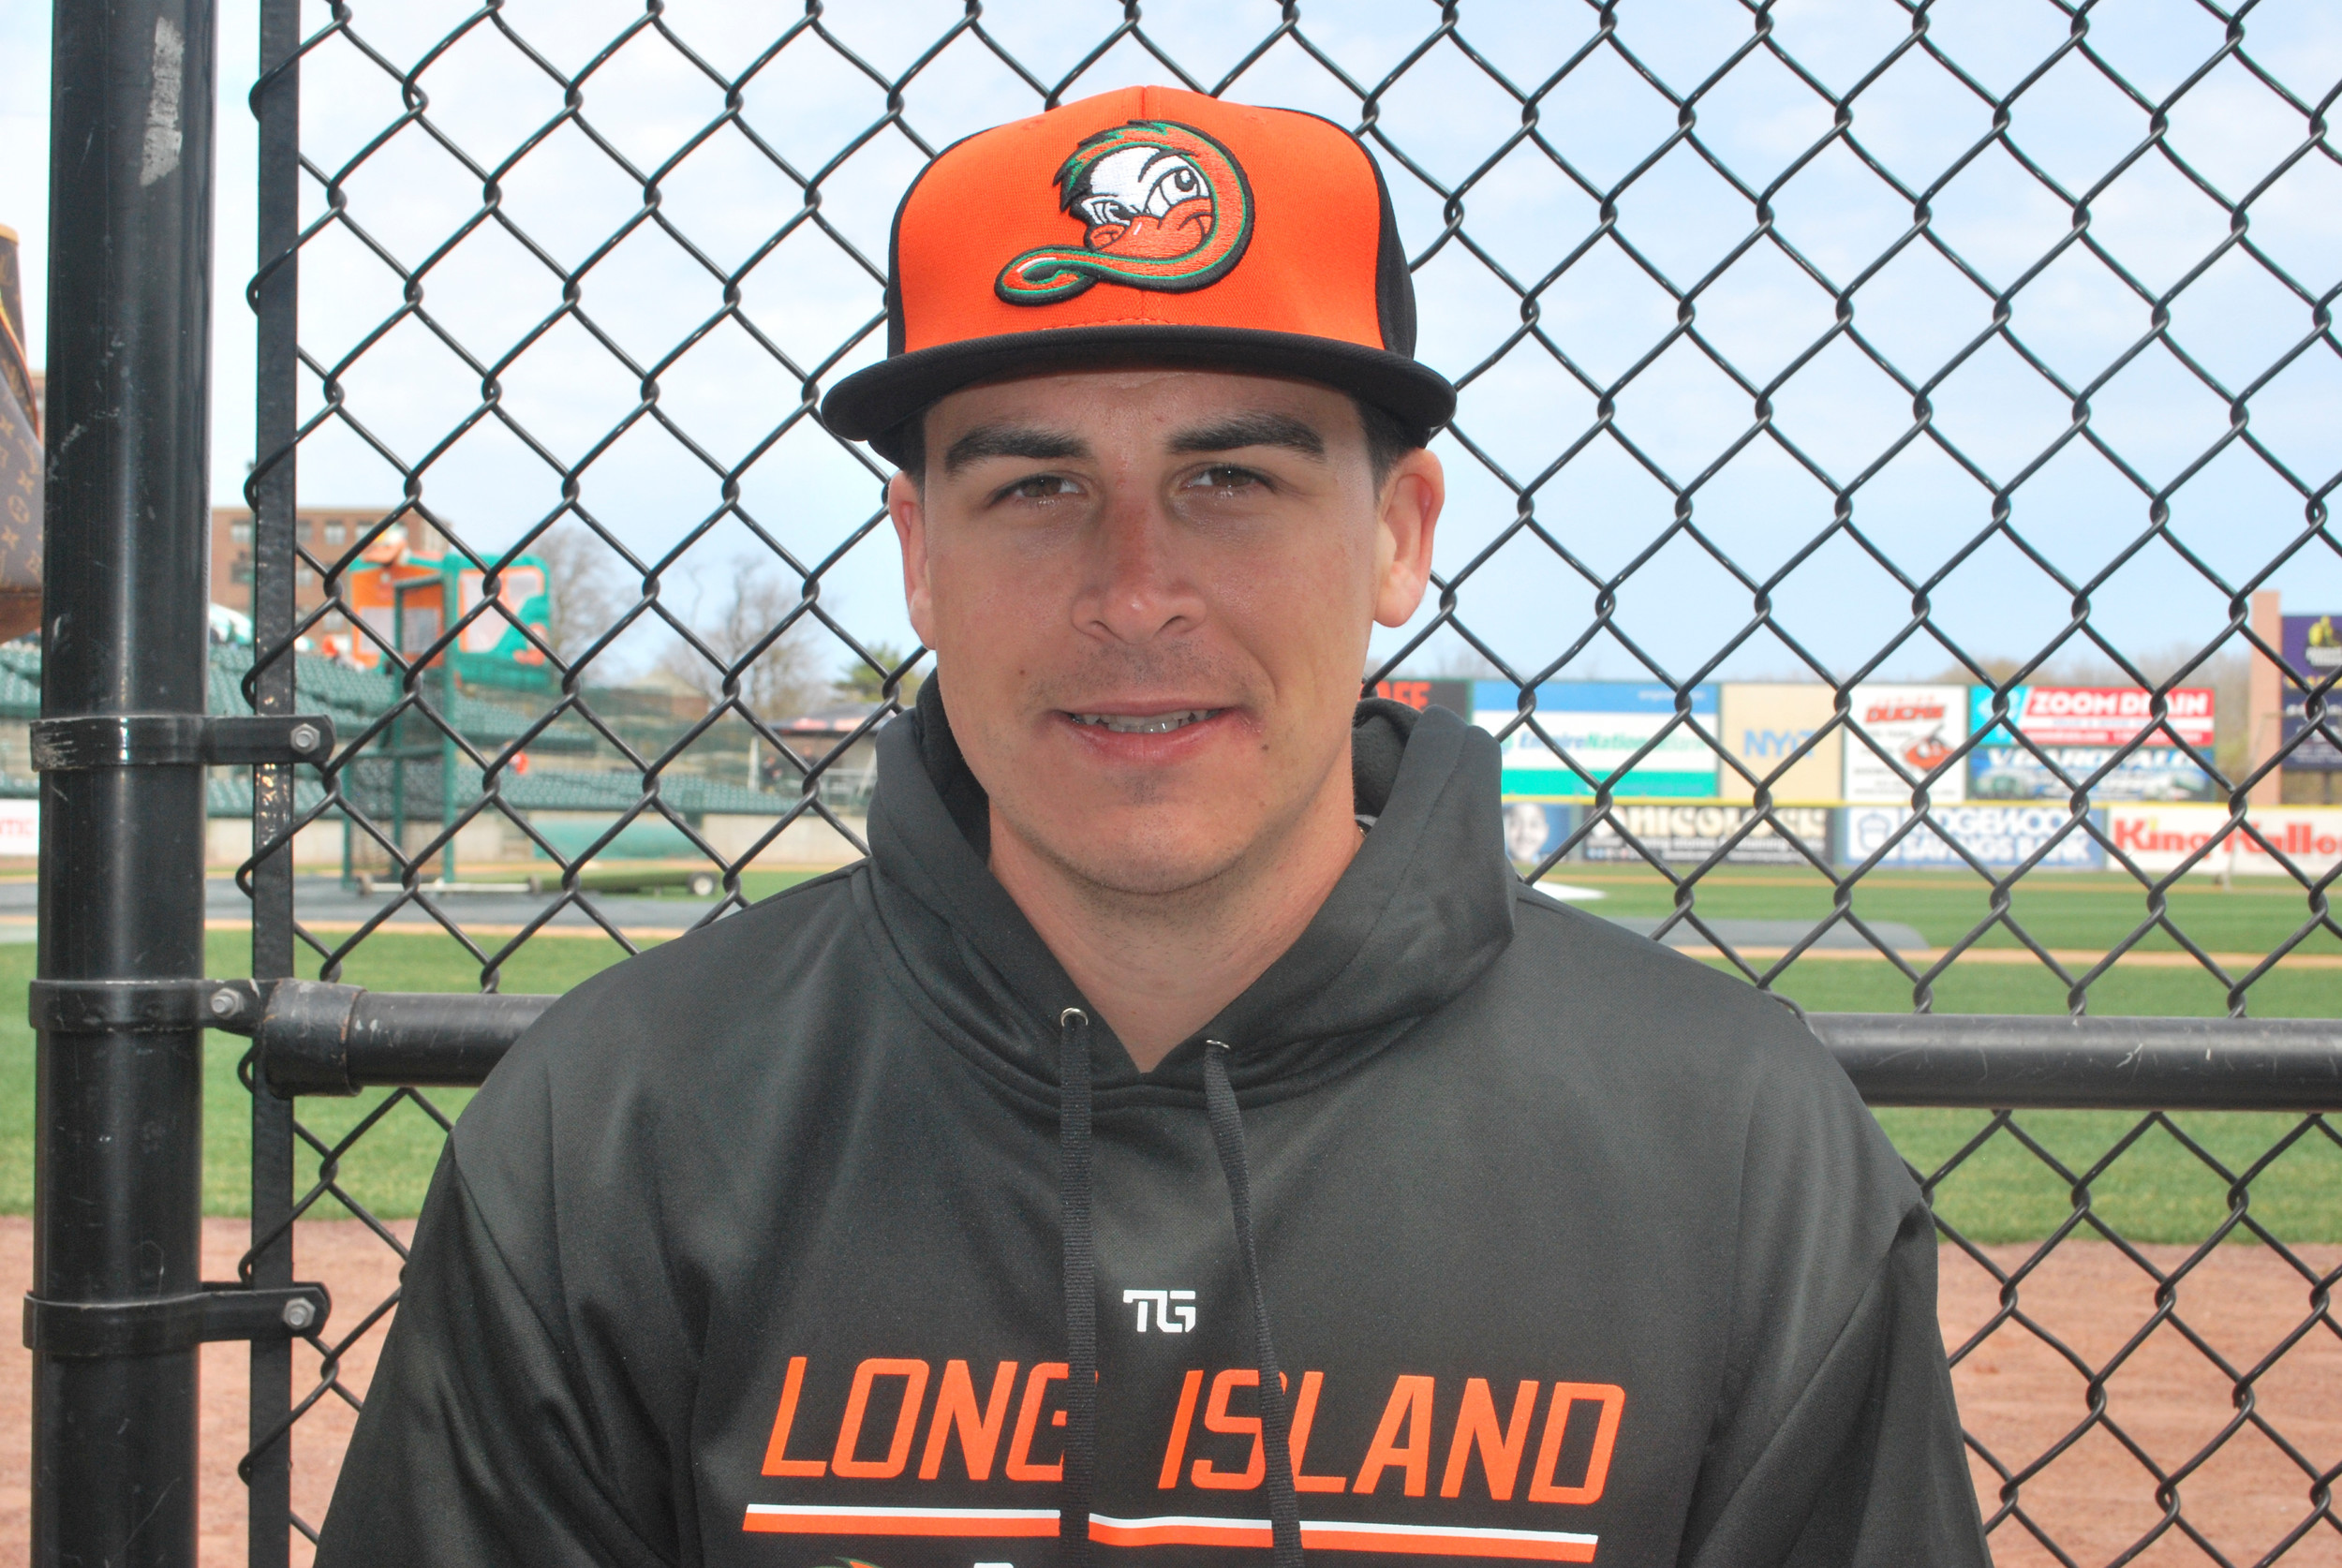 Keith Couch is third on the pitching lineup rotation for the Long island Duck this season.